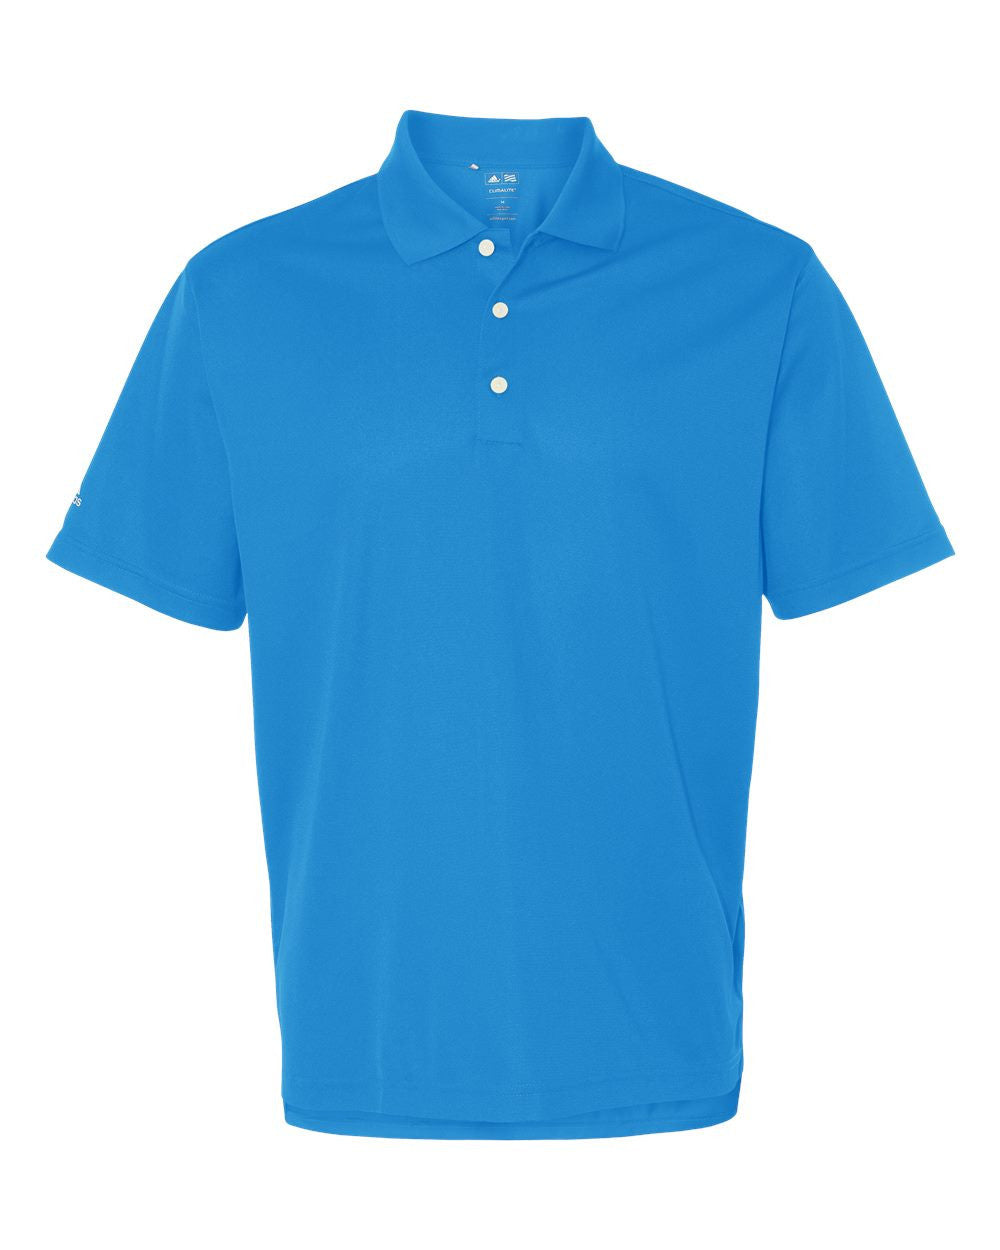 Performance Pique polo By Adidas - Discountedrack.com